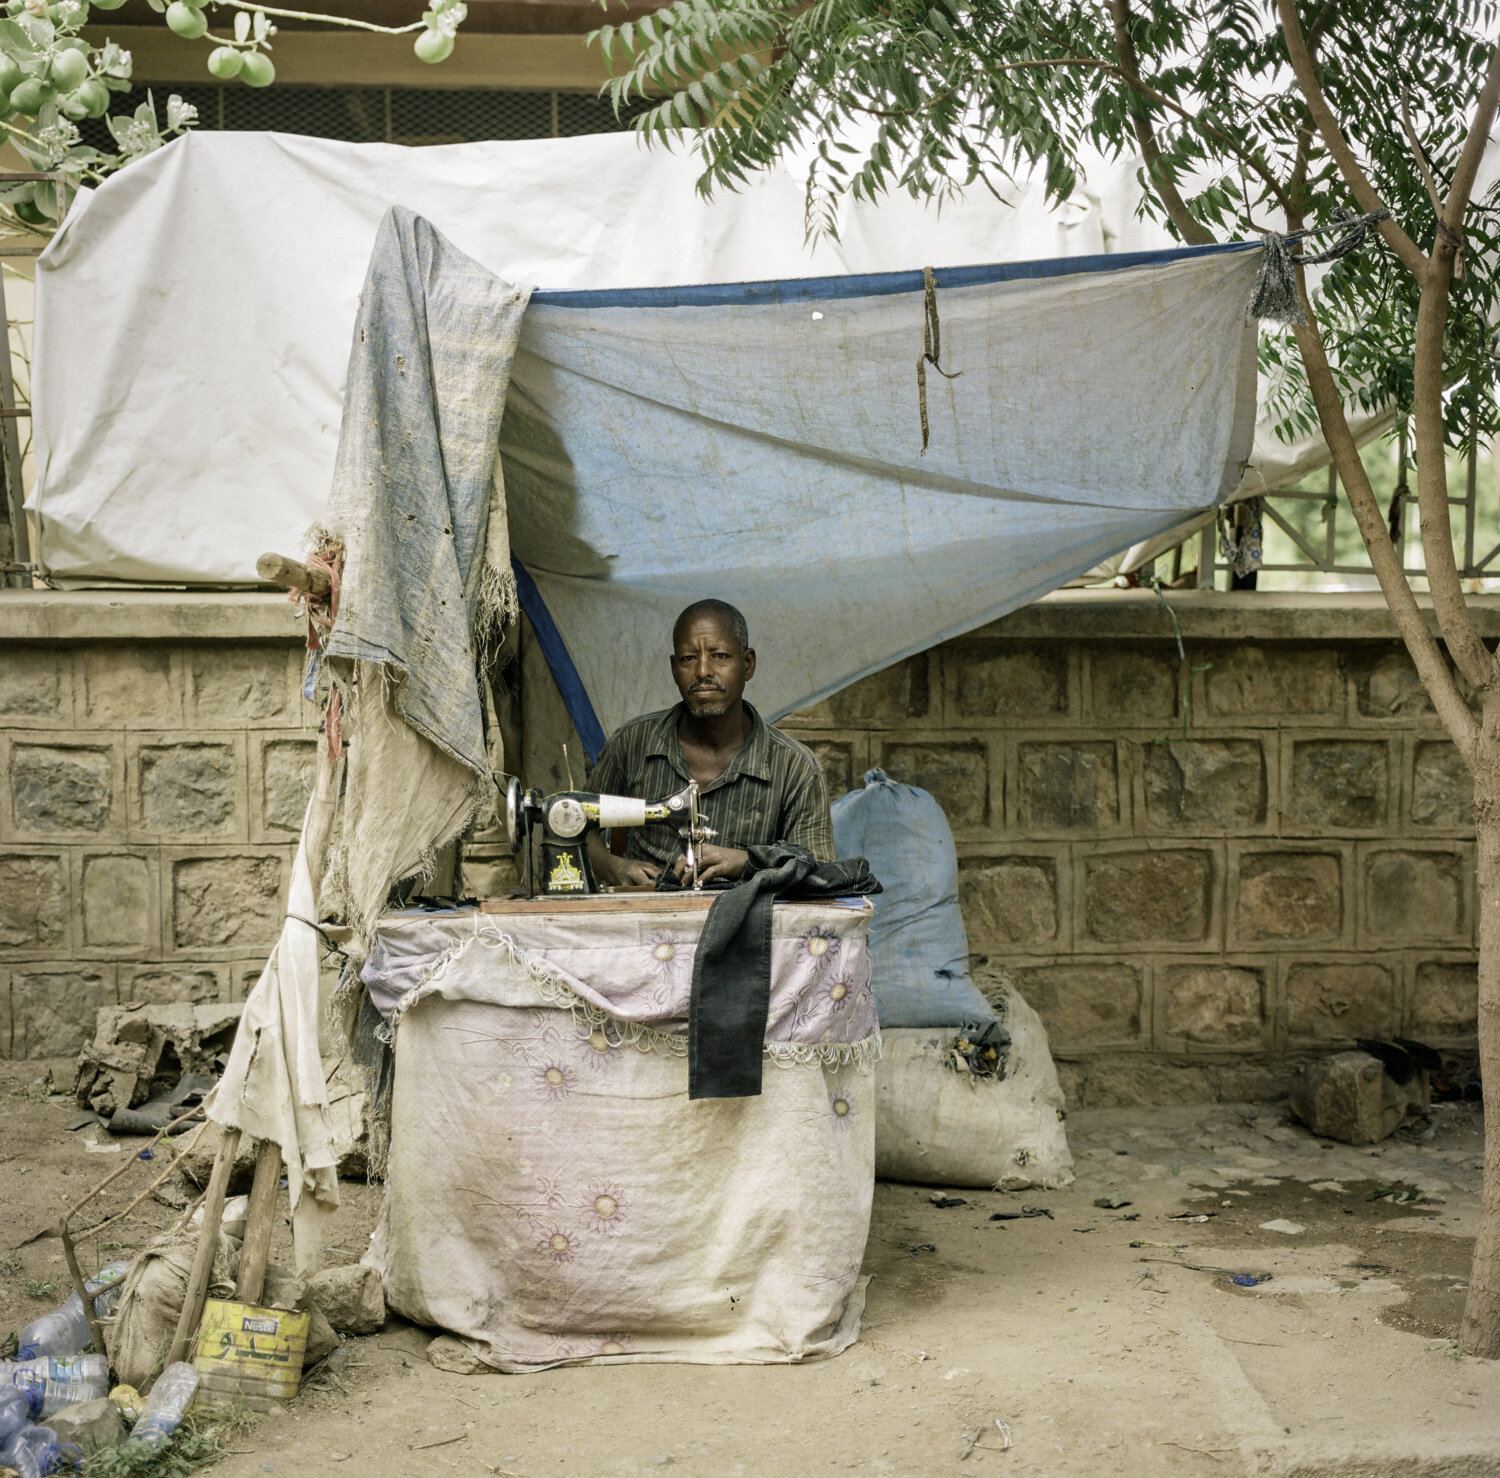 A man custom tailors clothes by the side of the road in Dire Dawa, Ethiopia